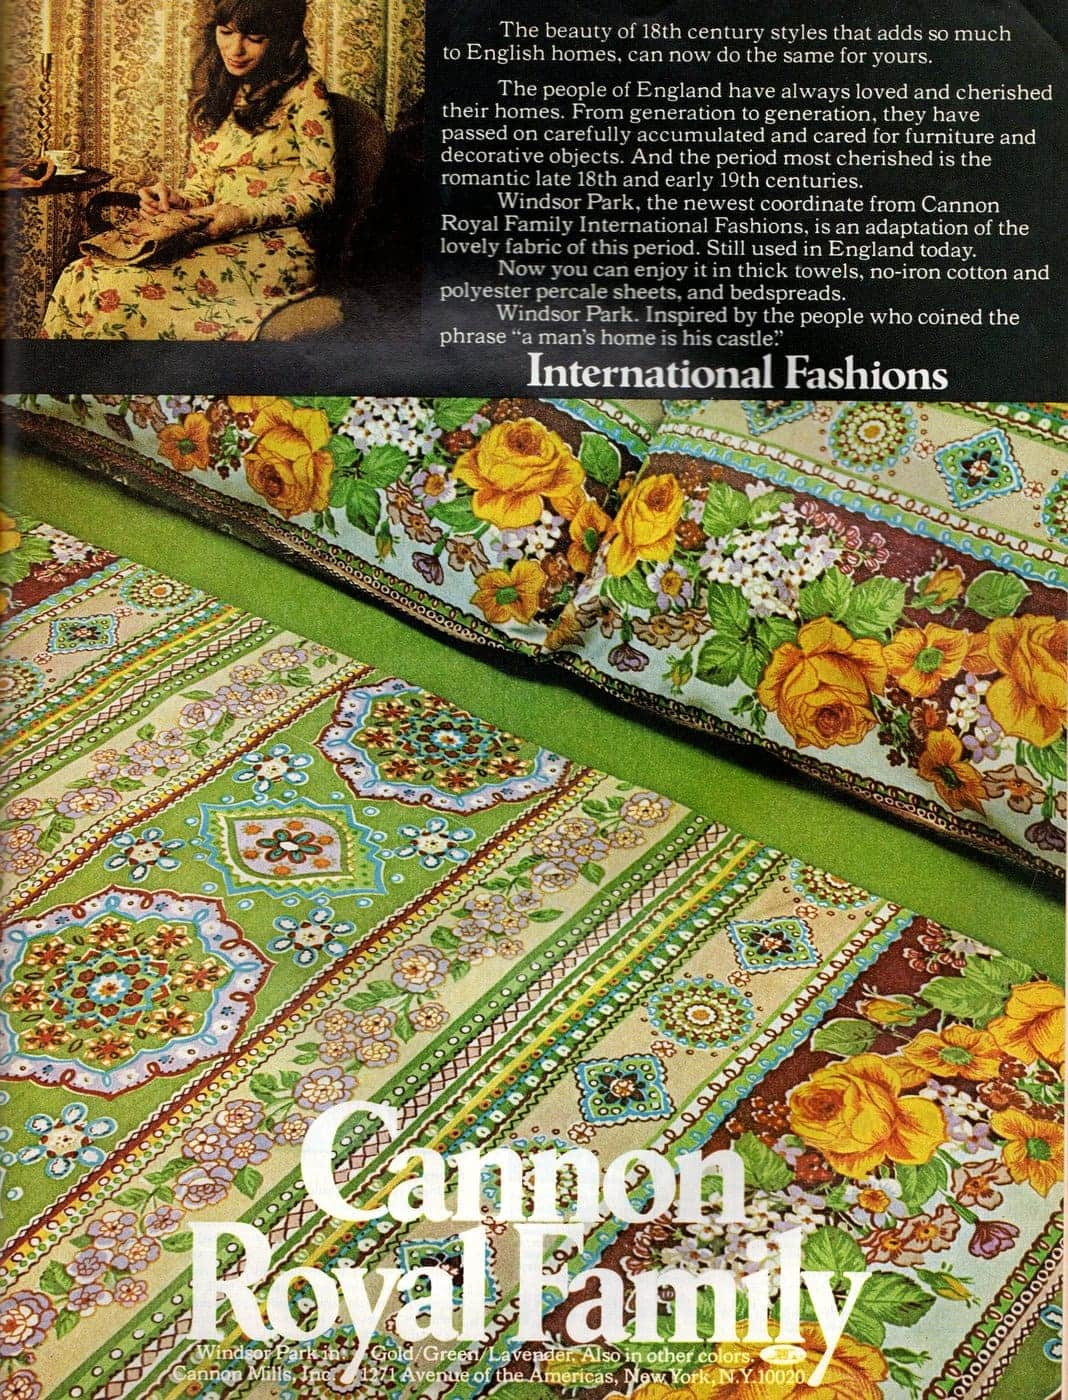 Vintage sheets - Cannon Windsor Park pattern from 1972